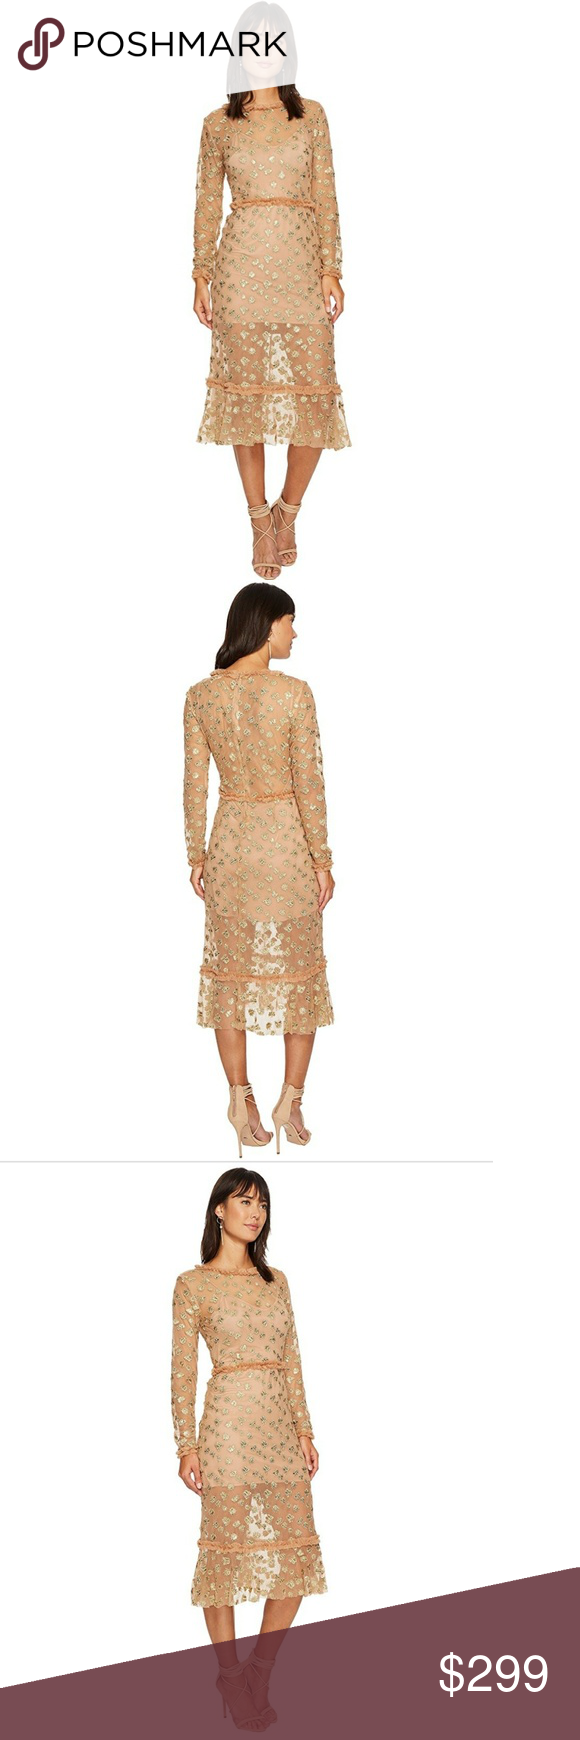 085fbdedab For Love and Lemons○Golden Garden Tulle Midi Dress For Love and Lemons○Golden  Garden Tulle Midi Dress. This amazing dress offers so much with its  gorgeous ...